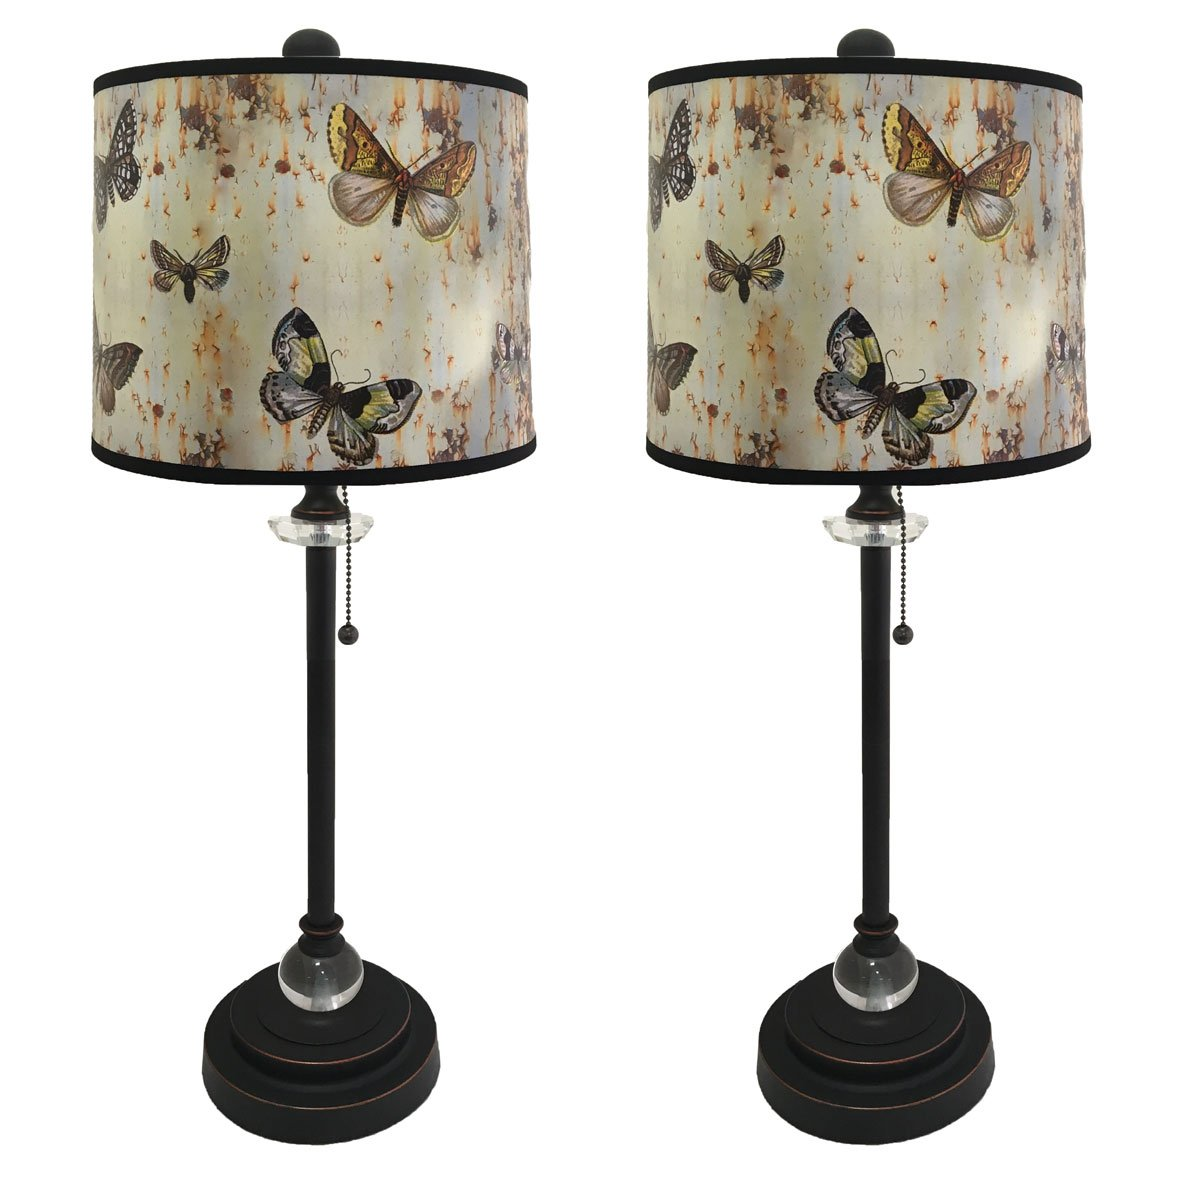 Royal Designs 28'' Crystal and Oil Rub Bronze Buffet Lamp with Bufferfly Graphic Design Hard Back Lamp Shade, Set of 2